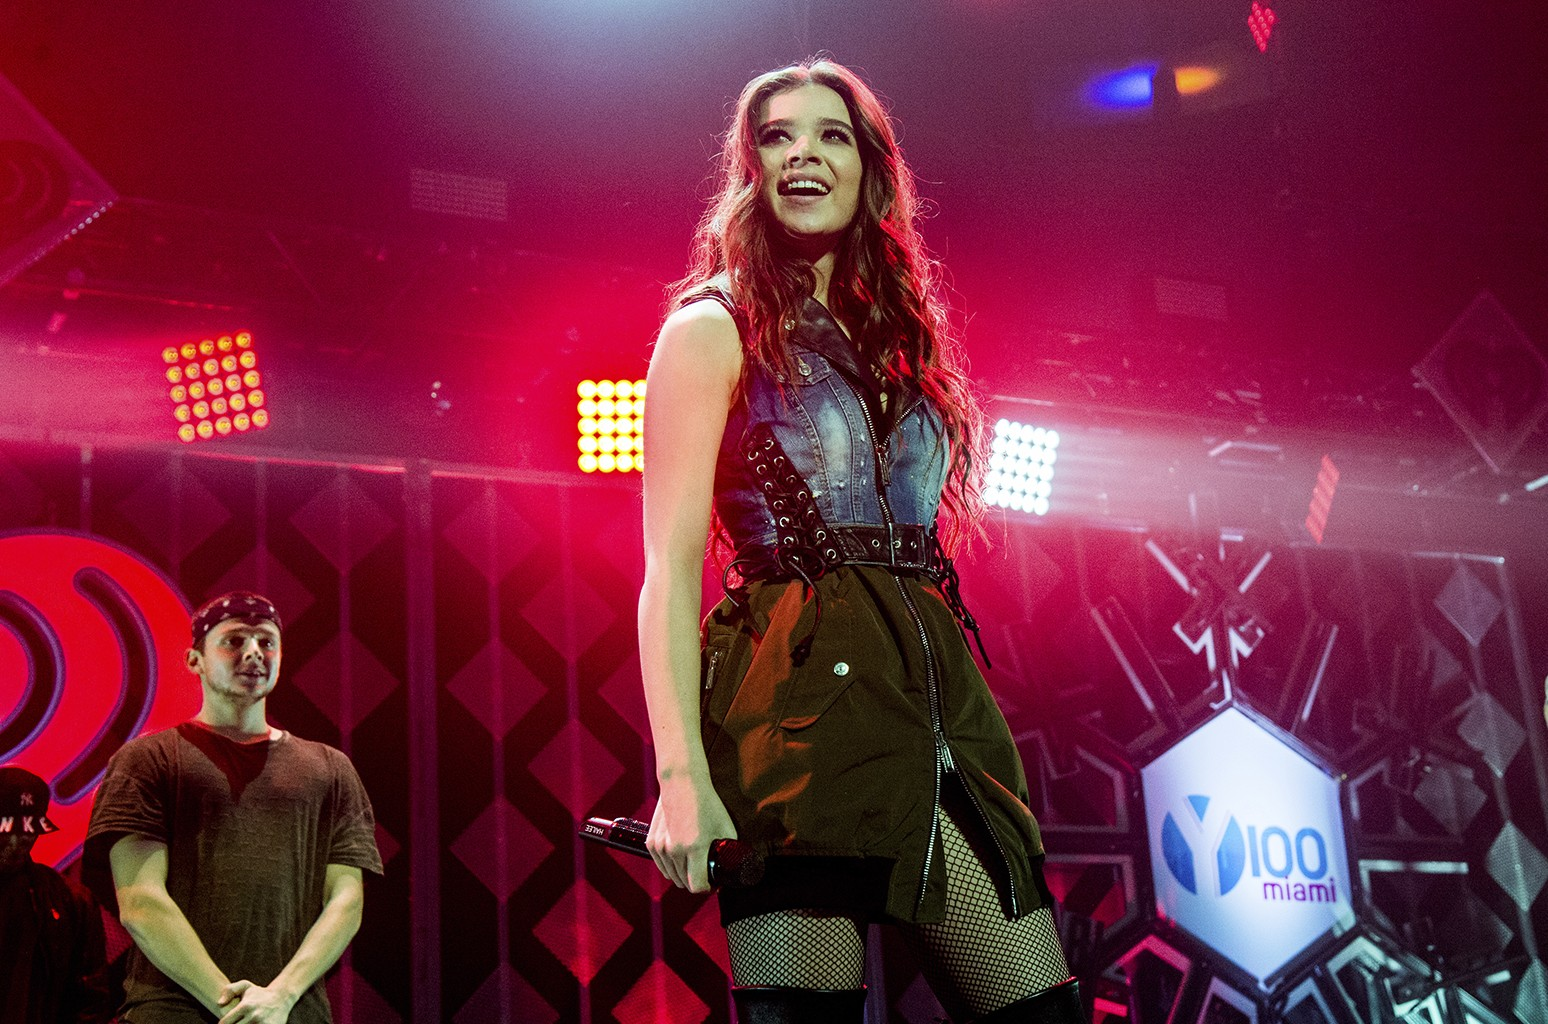 Hailee Steinfeld performs at Y100's iHeartRadio Jingle Ball 2016 at BB&T Center on Dec. 18, 2016 in Sunrise, Fla.